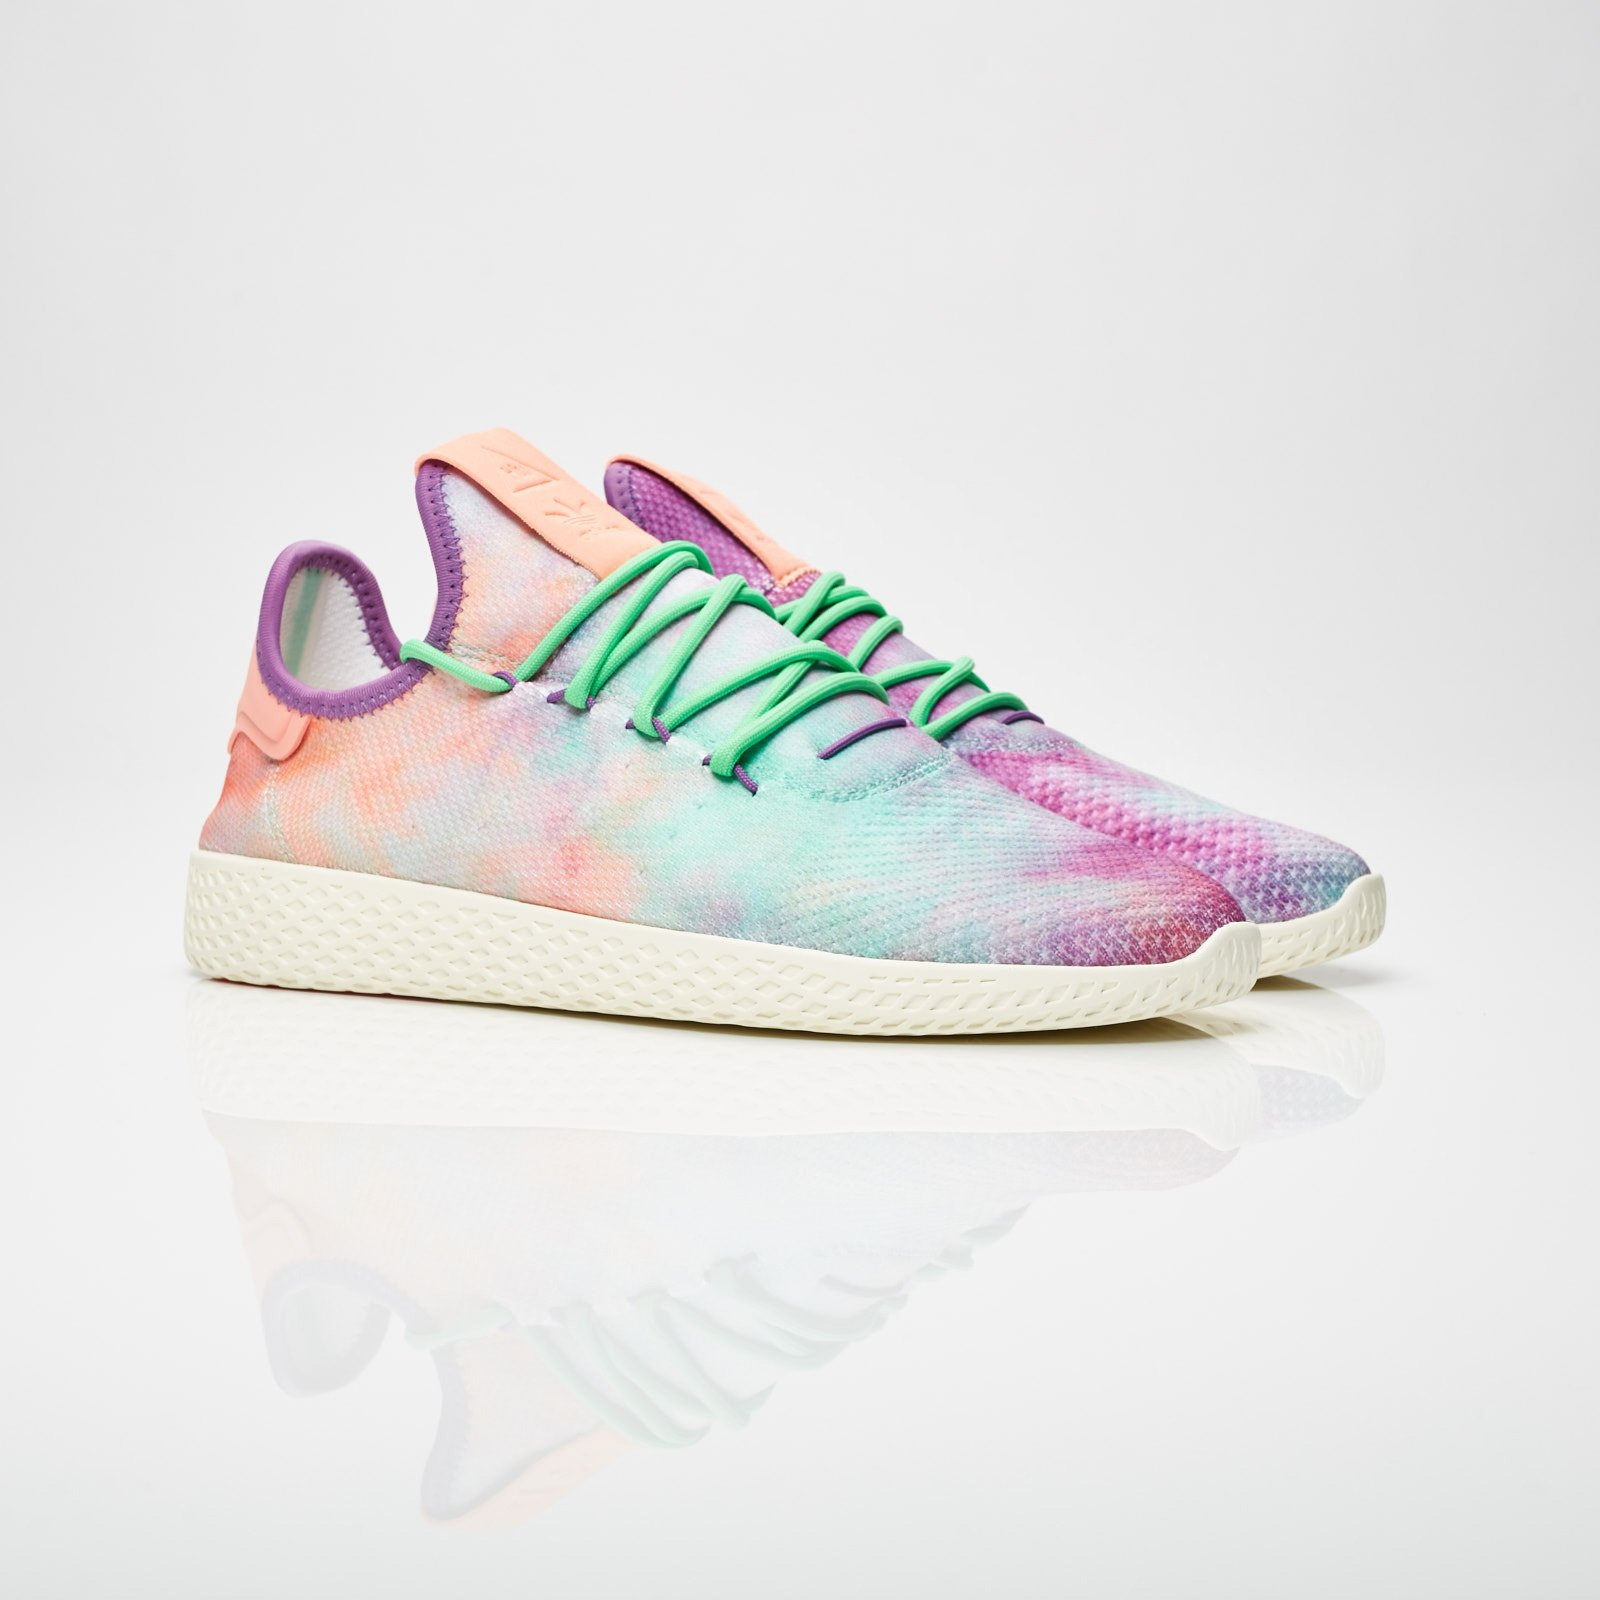 7e2e05fd8b382 adidas Pharrell Williams HU Holi Tennis Hu MC - Ac7366 ...